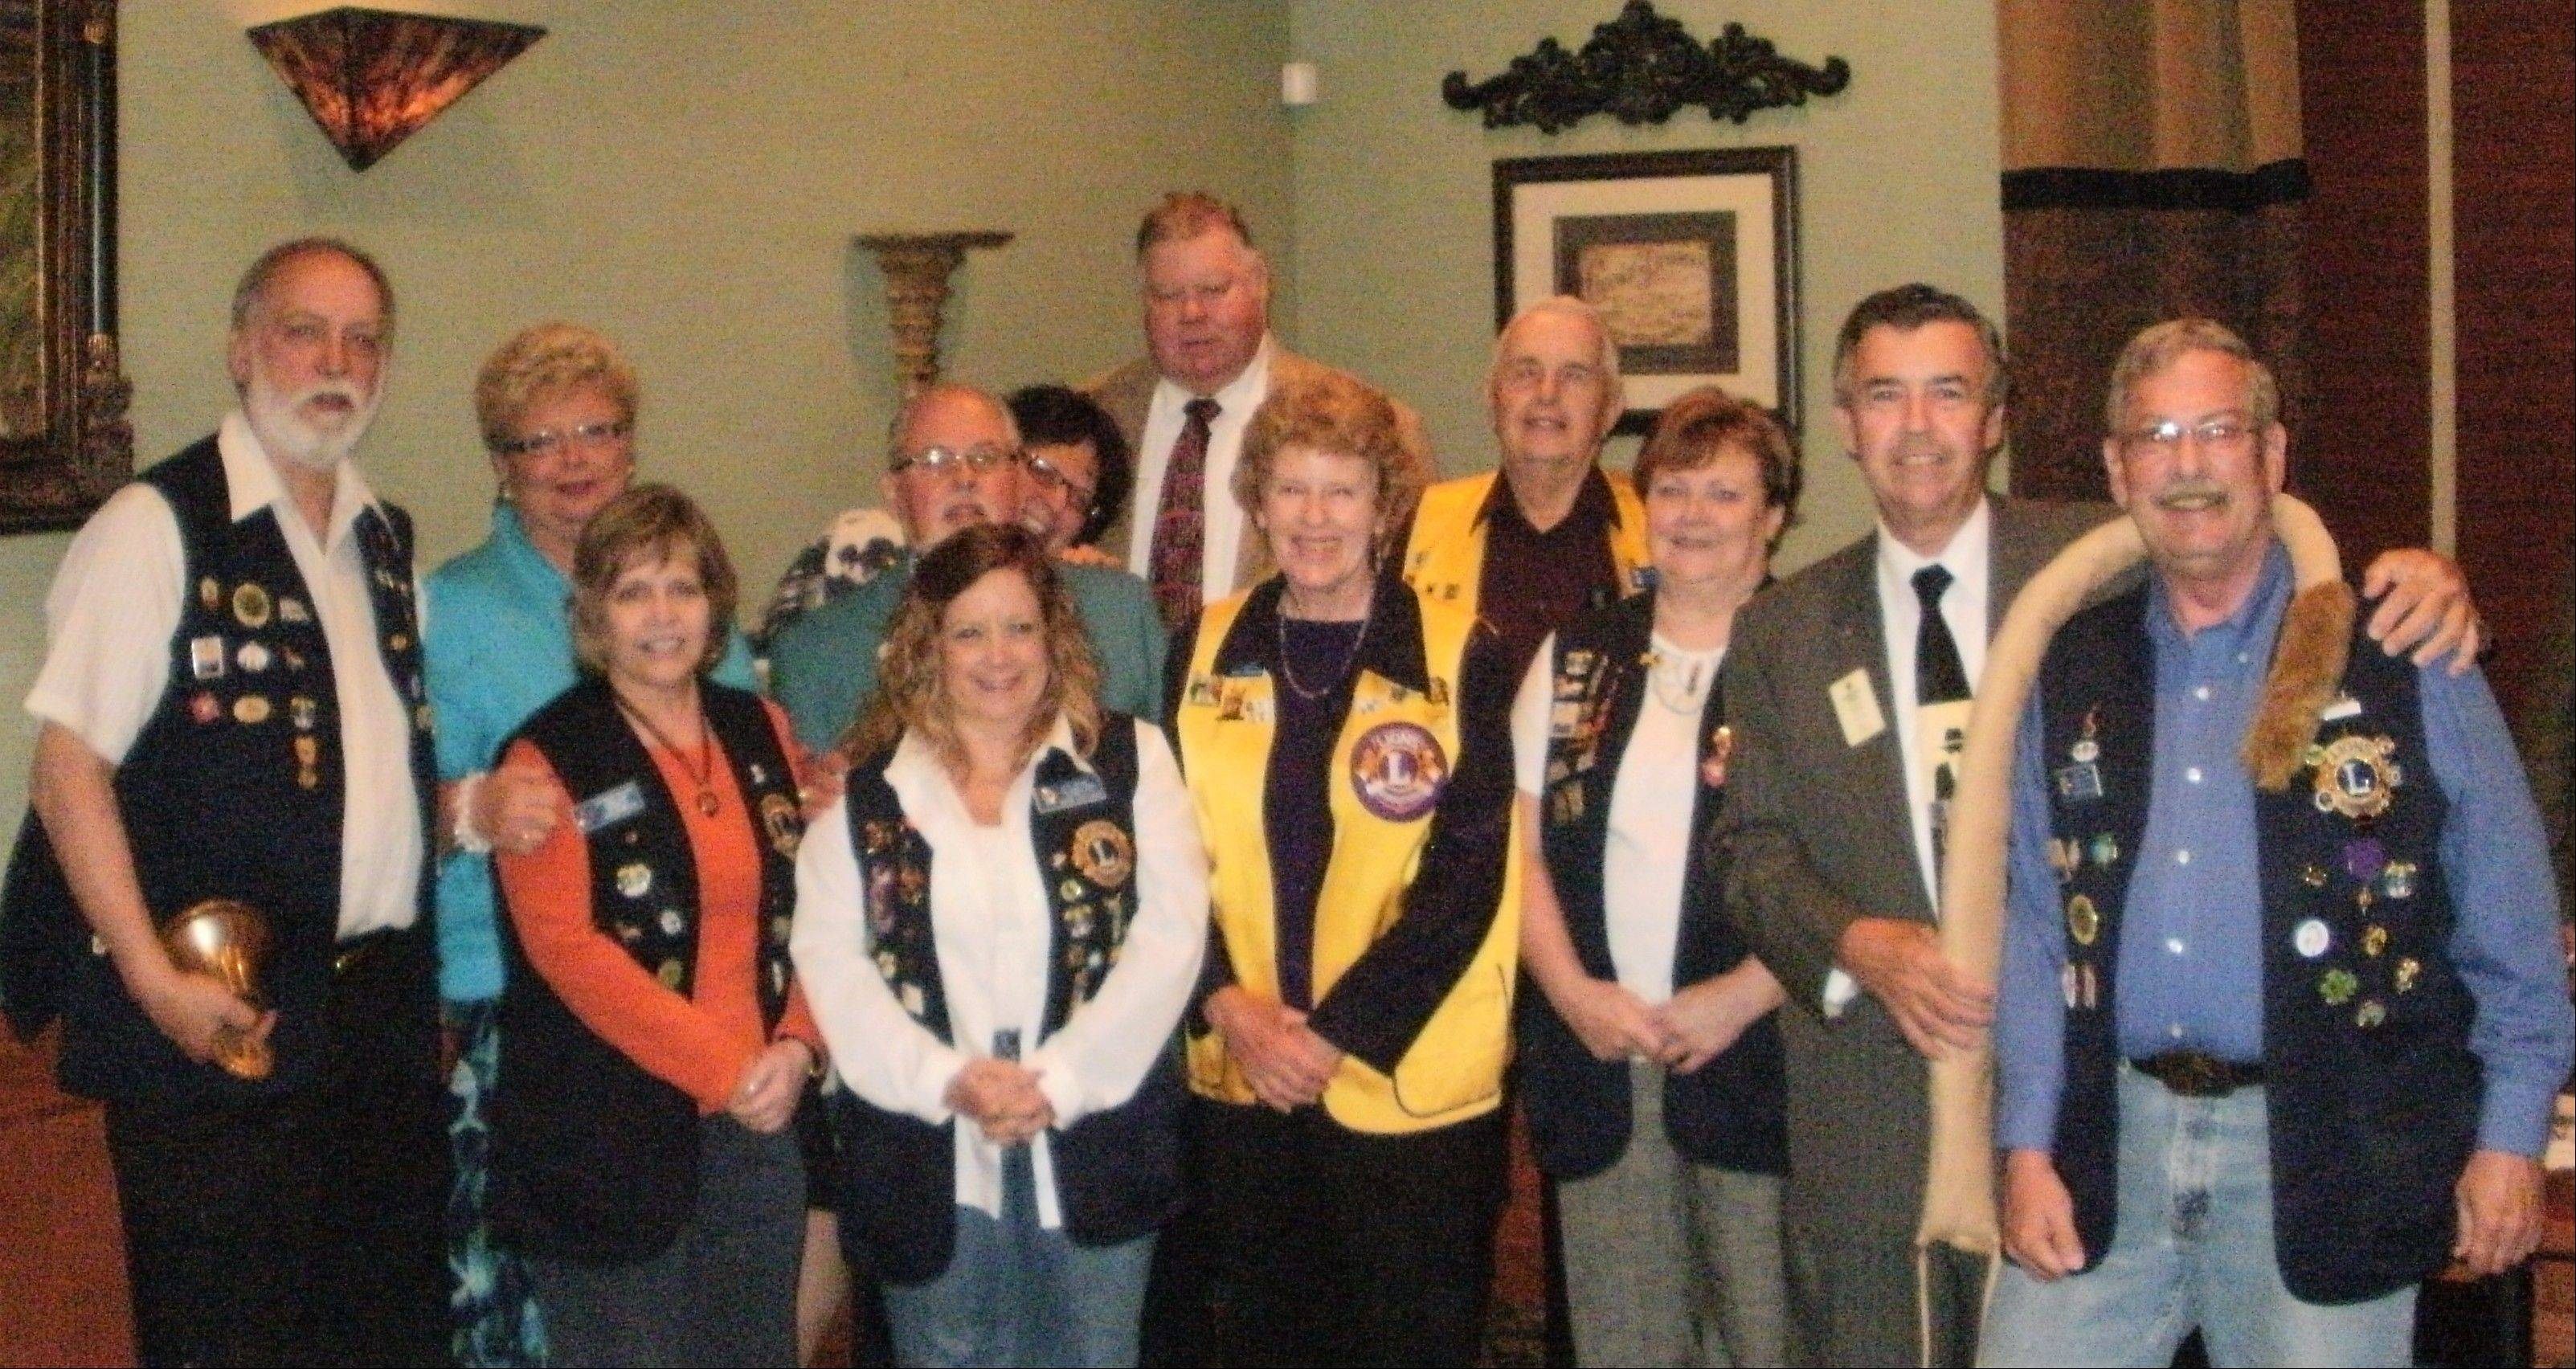 The Elk Grove Lions Club new officers and directors for 2011-2012.